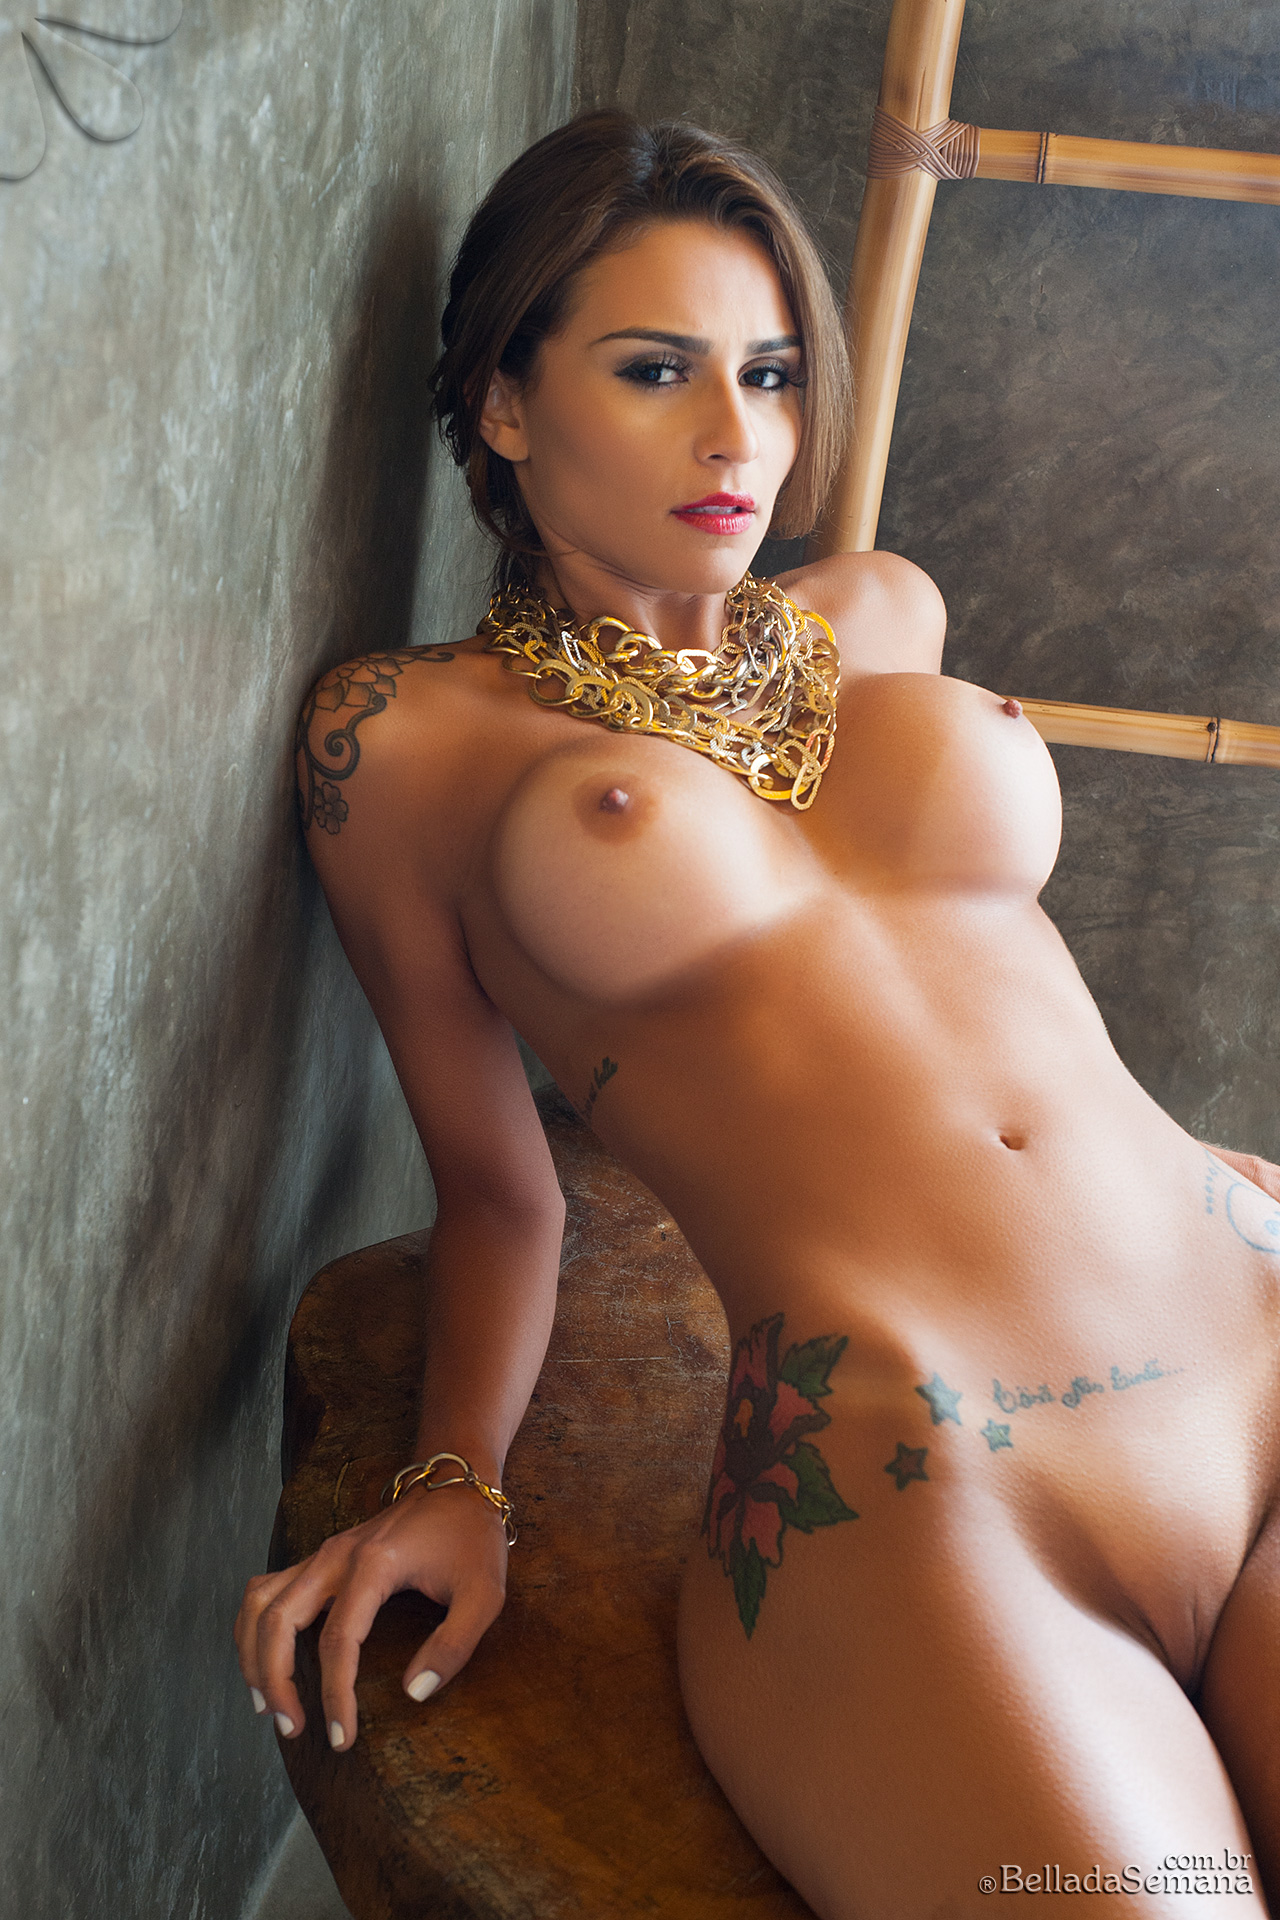 Pussy Claudia Alende nude (59 foto and video), Topless, Cleavage, Feet, panties 2015